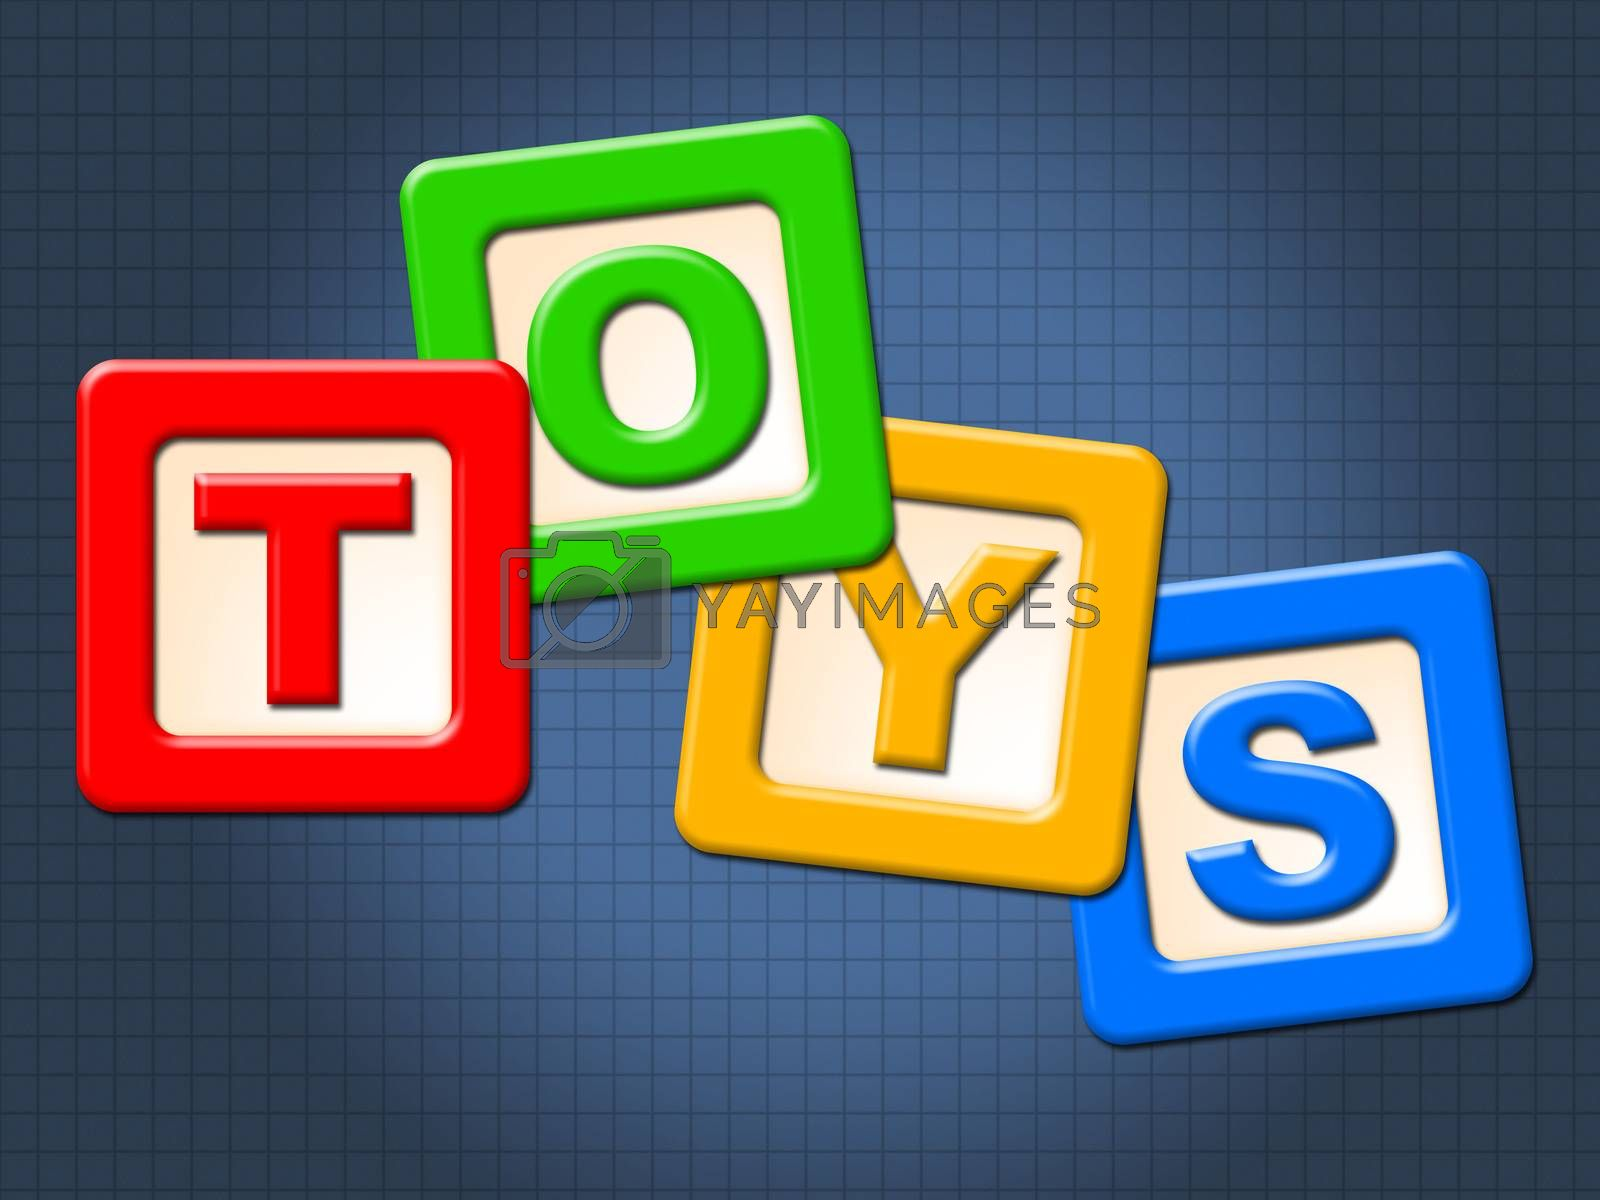 Toys Kids Blocks Means Youths Shopping And Child by stuartmiles